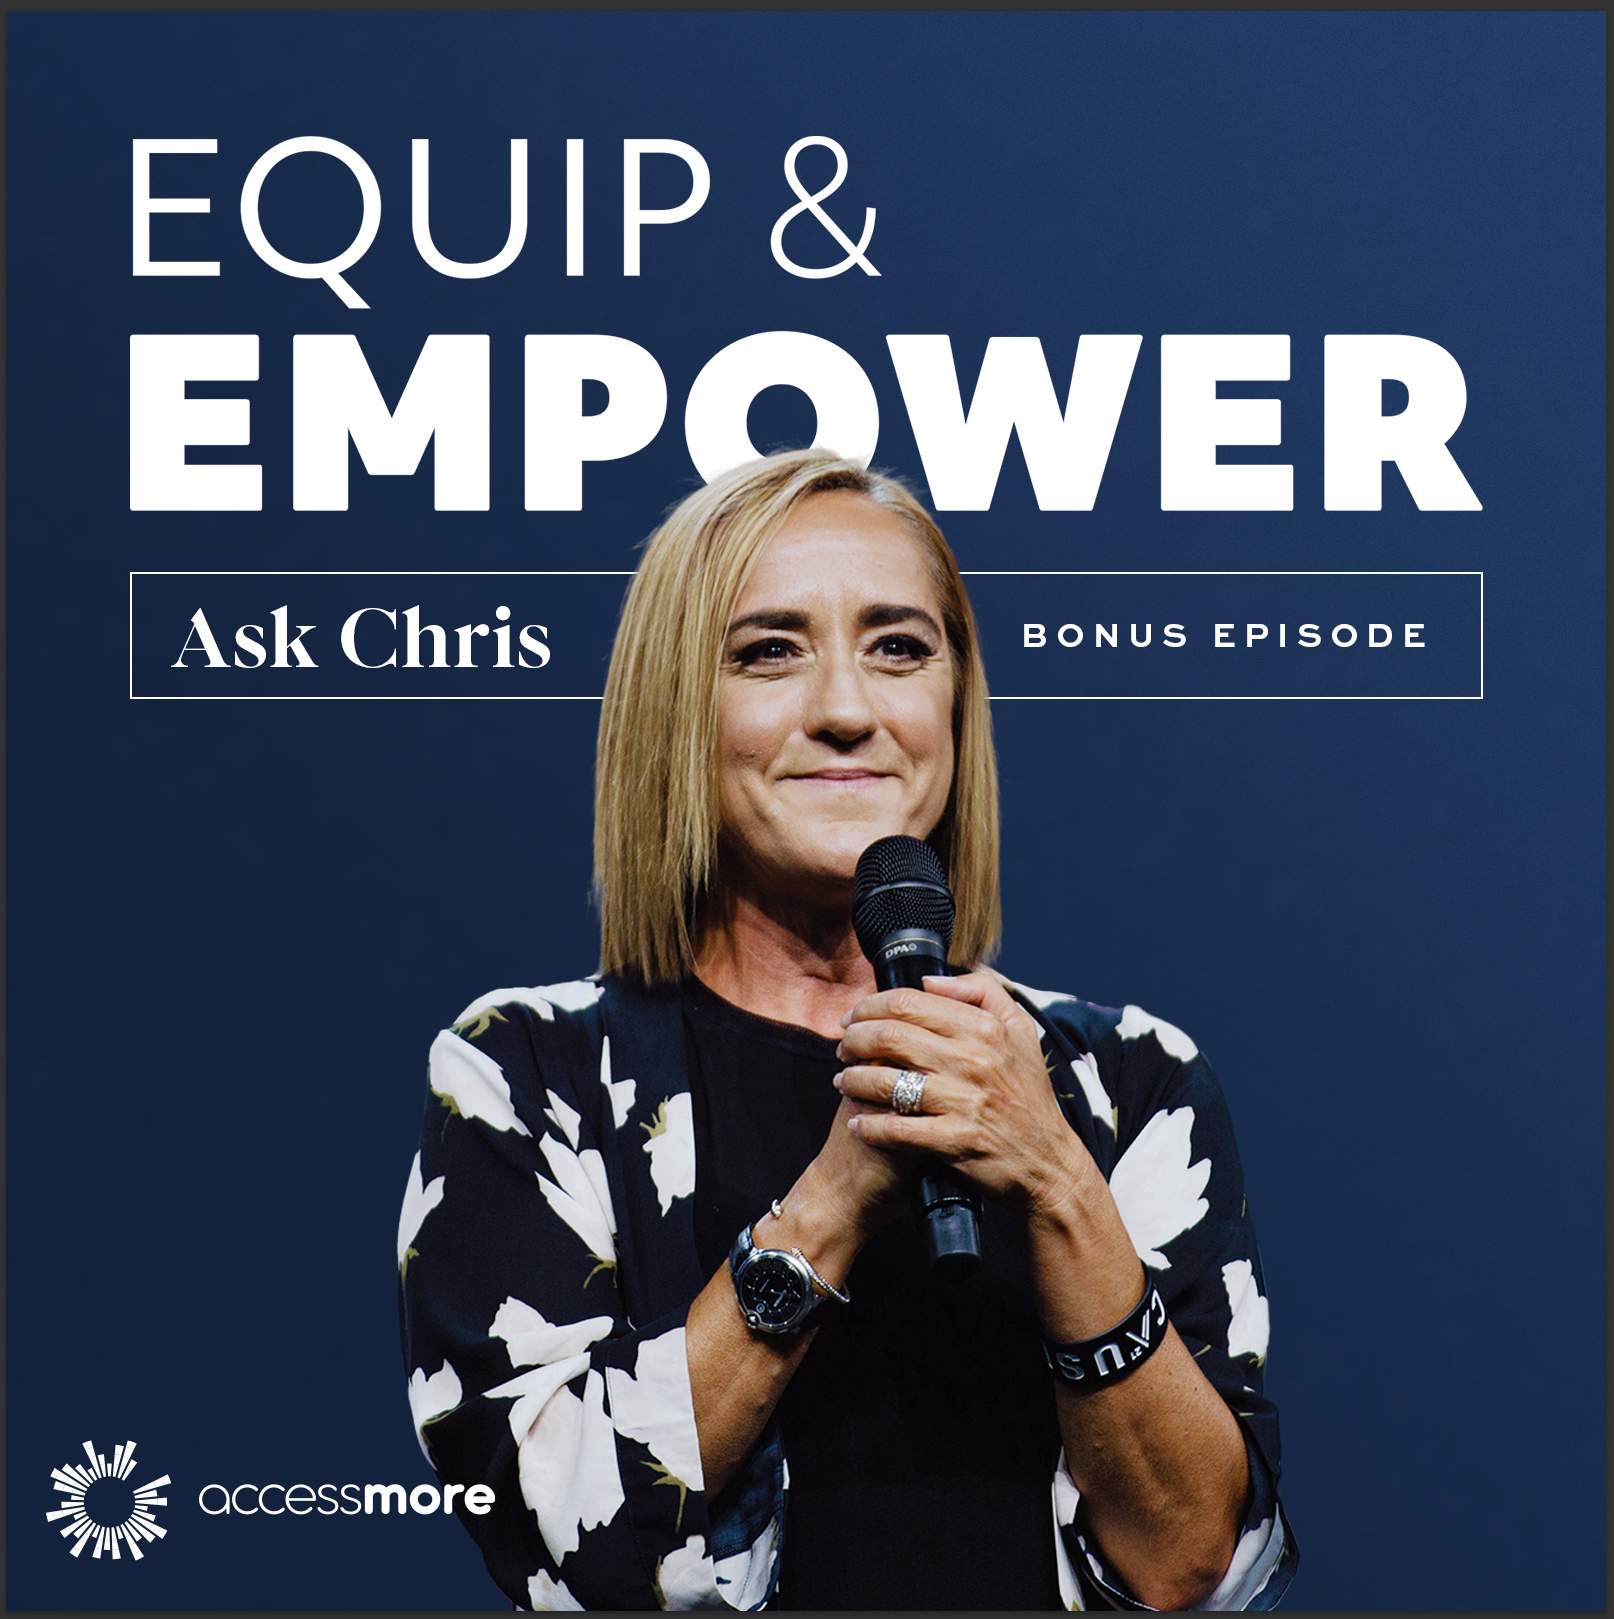 EP 91 Christine Answers Your Questions About Purpose